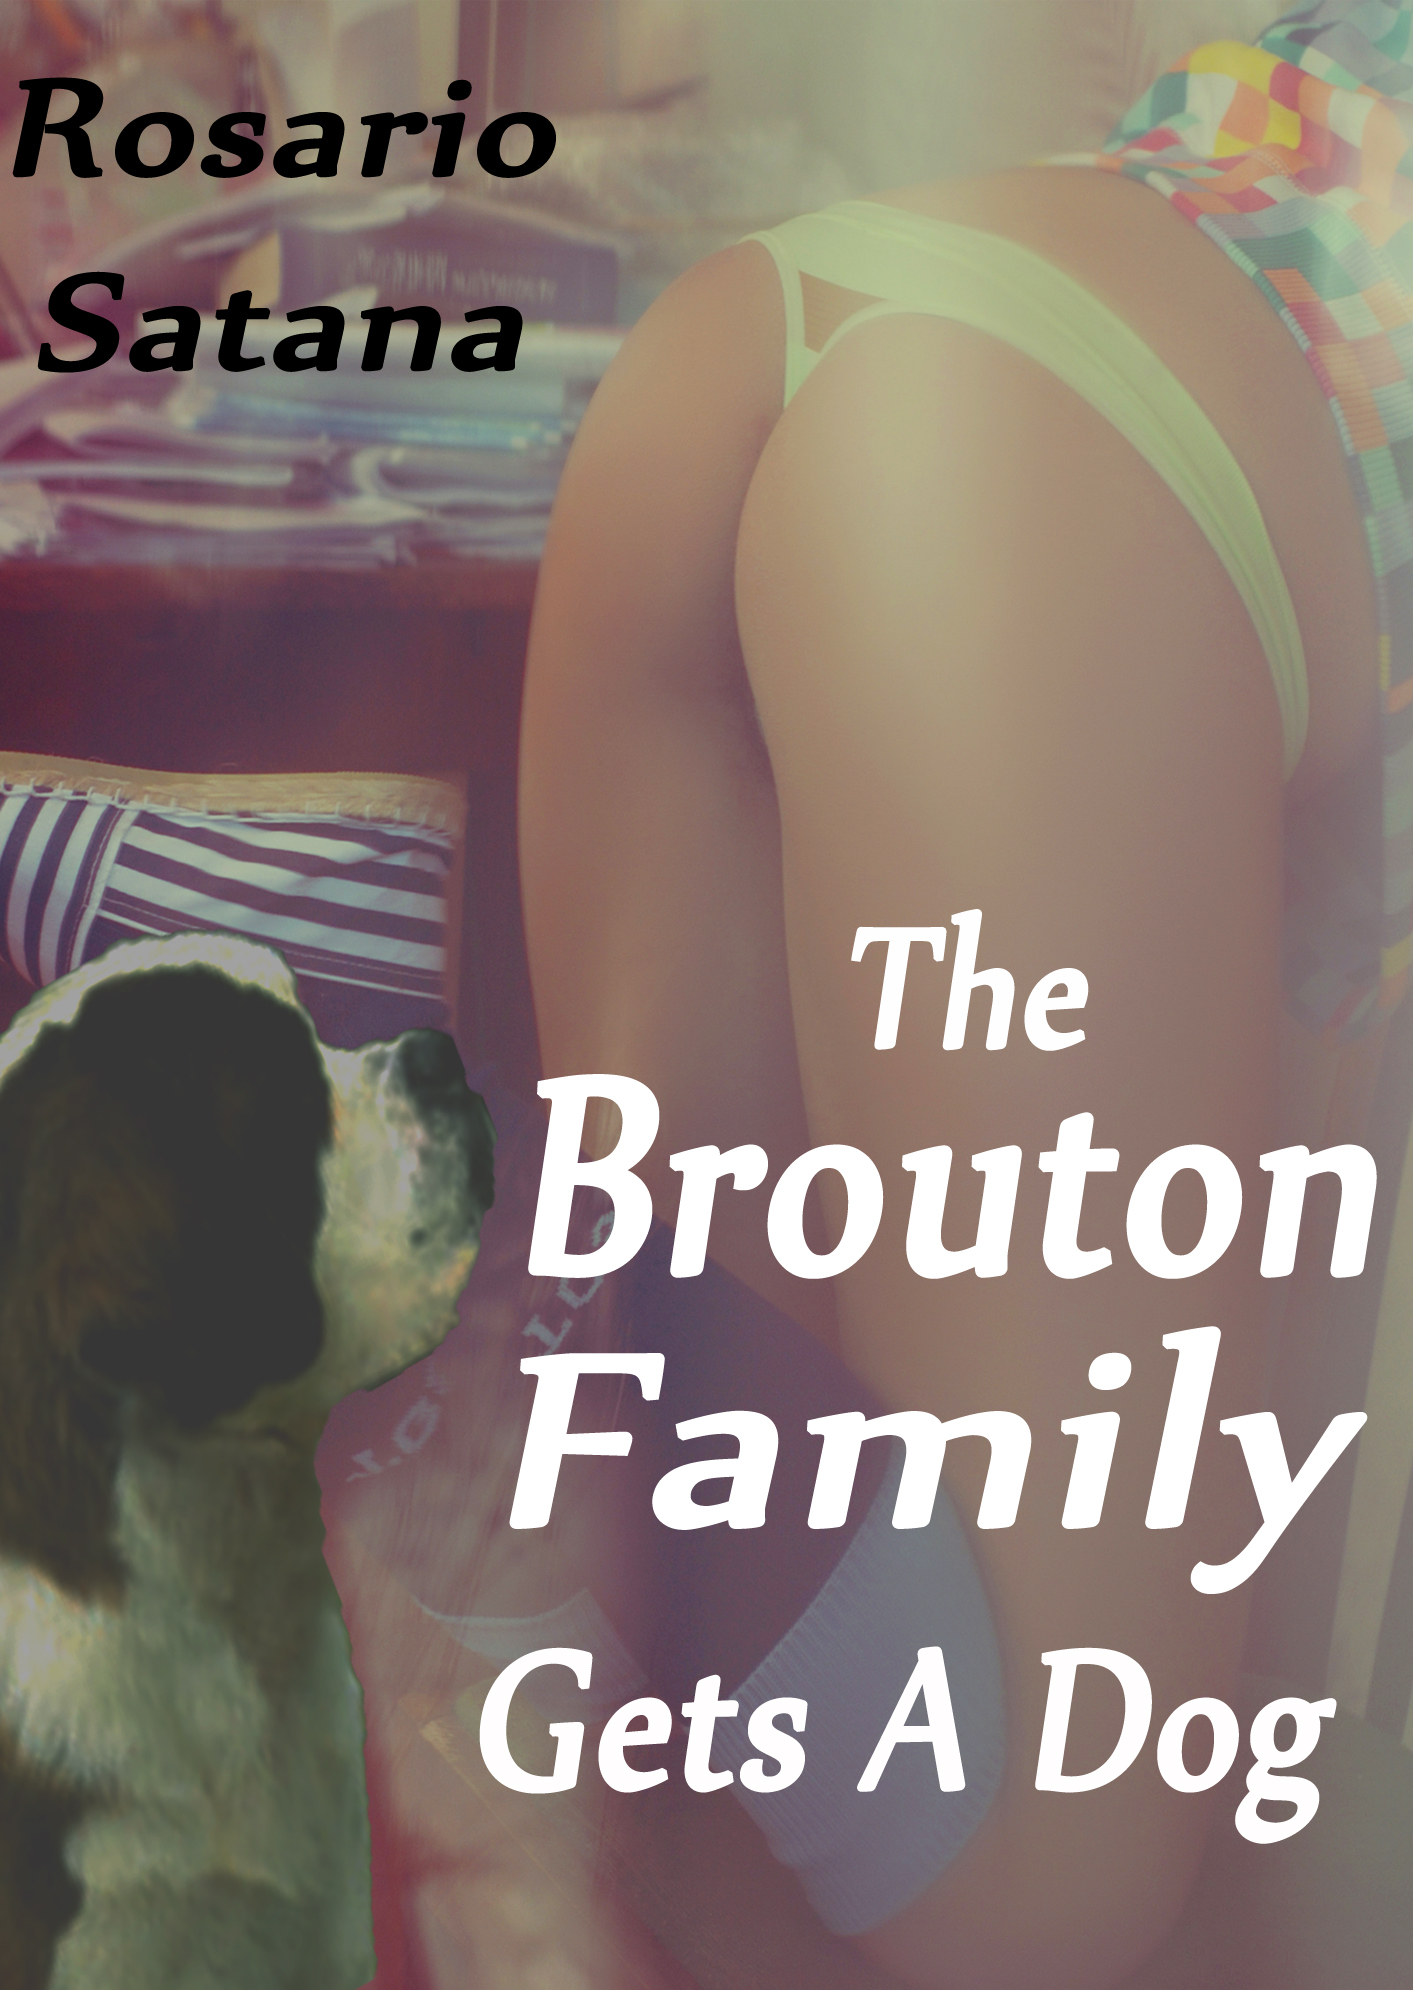 family beastiality The Brouton Family Gets A Dog (Incest Bestiality) by Rosario Satana